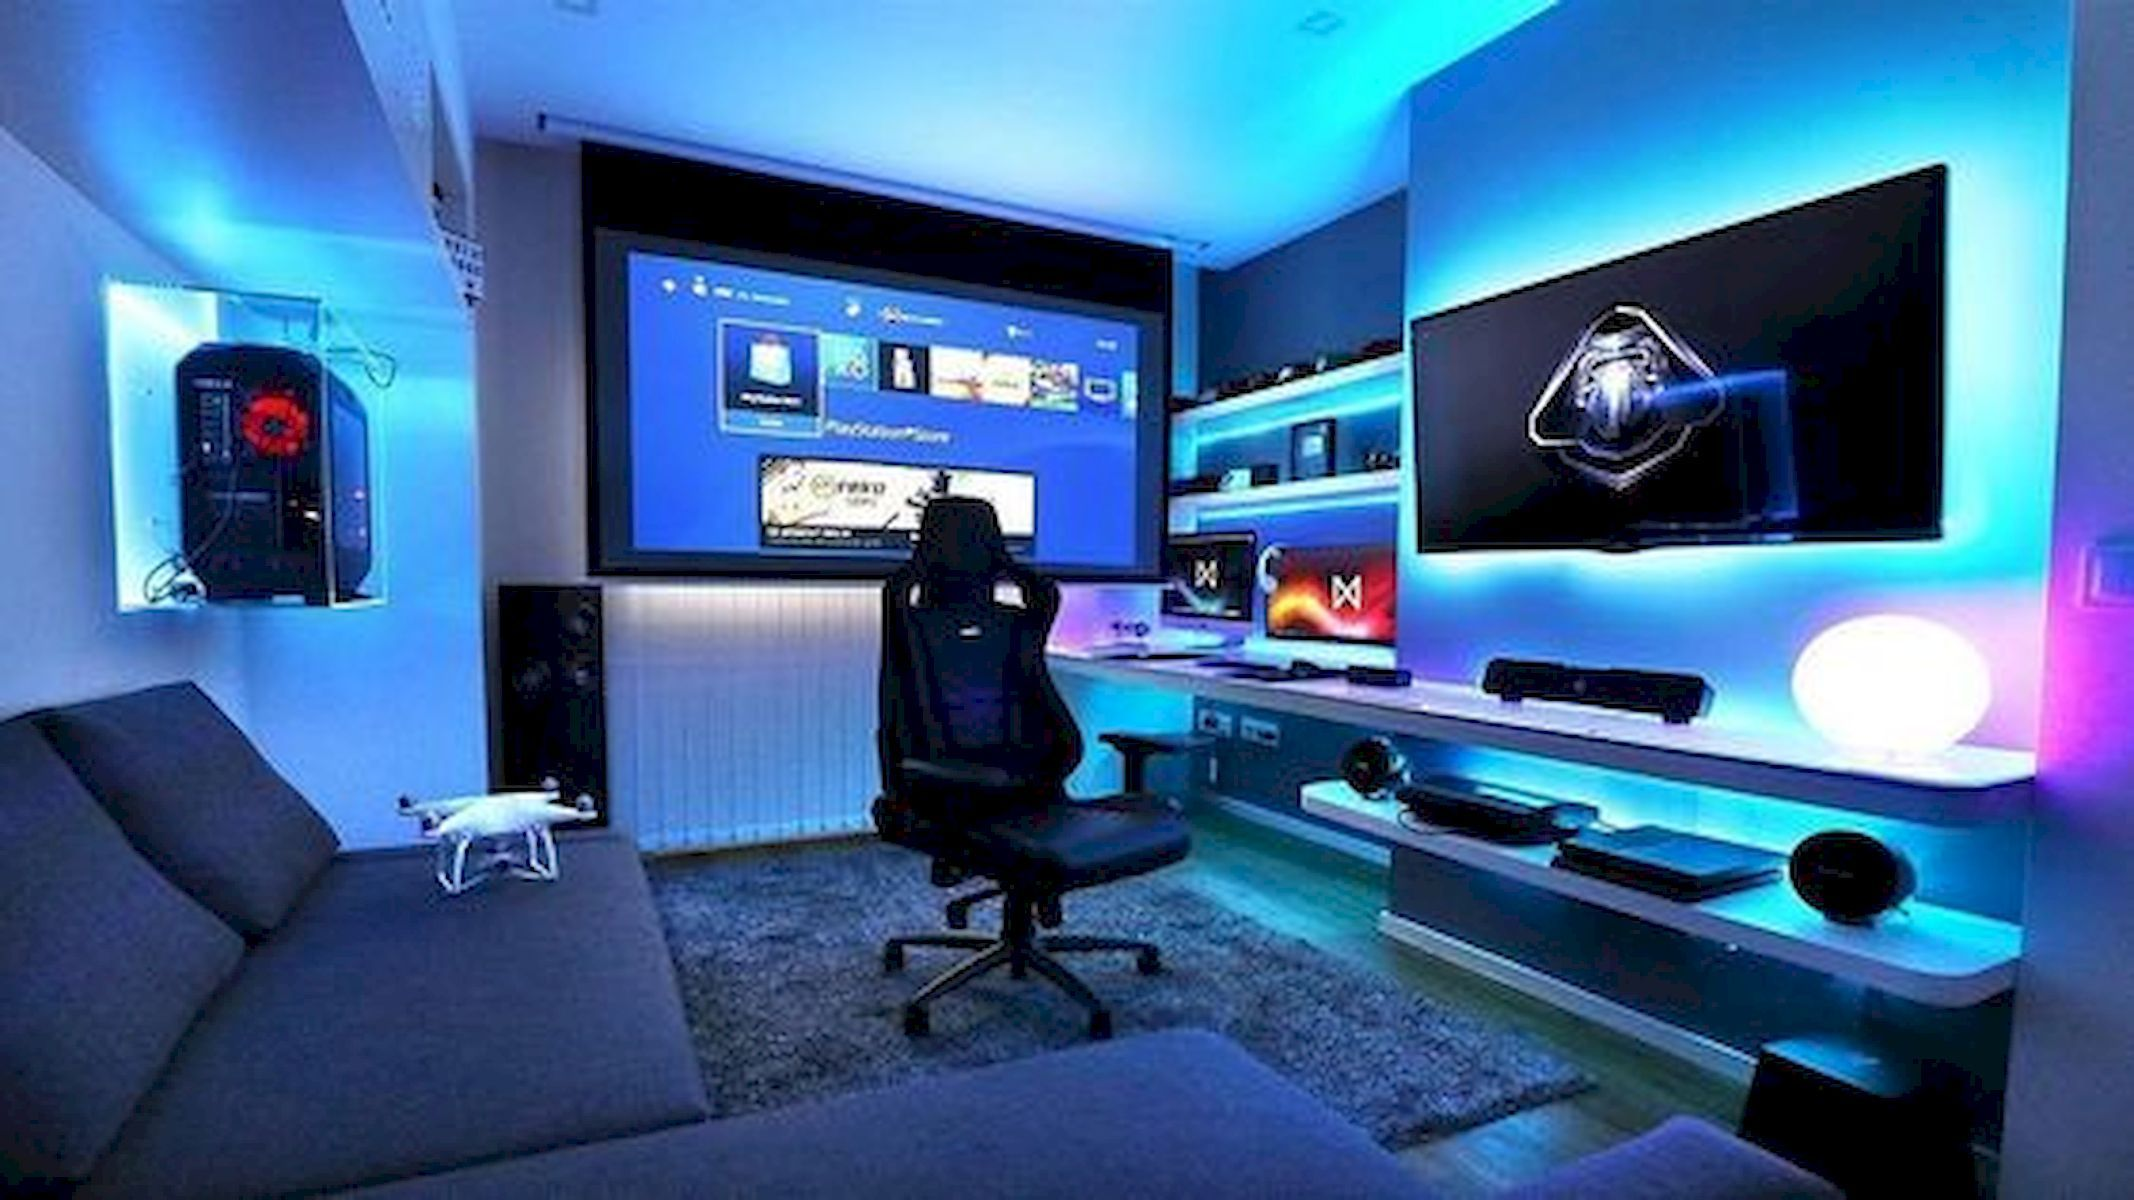 Cool 45 Awesome Computer Gaming Room Decor Ideas And Design Source Https Artmyideas Com 2019 03 03 4 Computer Gaming Room Video Game Room Design Room Setup Bedroom gaming setup ideas